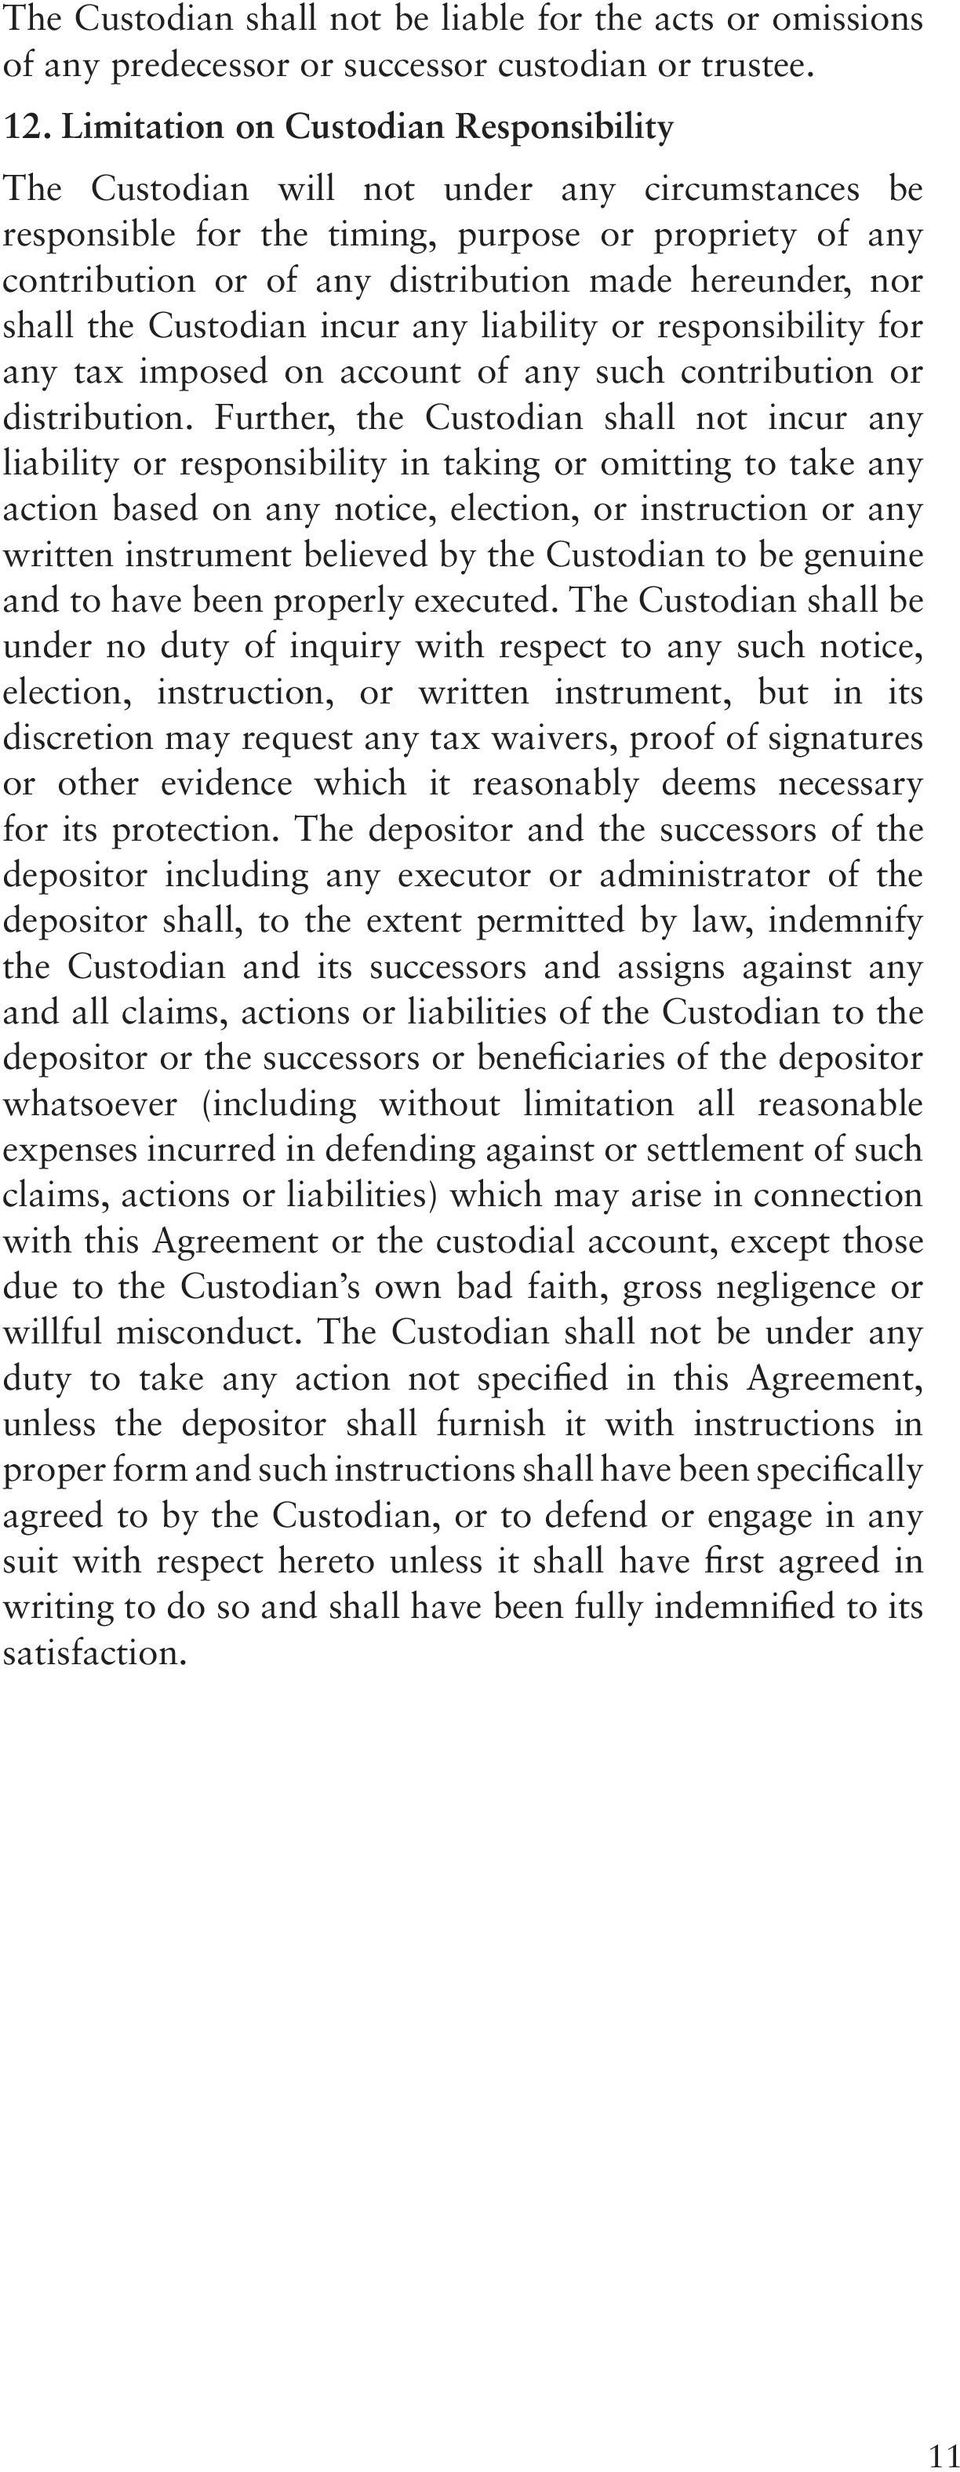 nor shall the Custodian incur any liability or responsibility for any tax imposed on account of any such contribution or distribution.